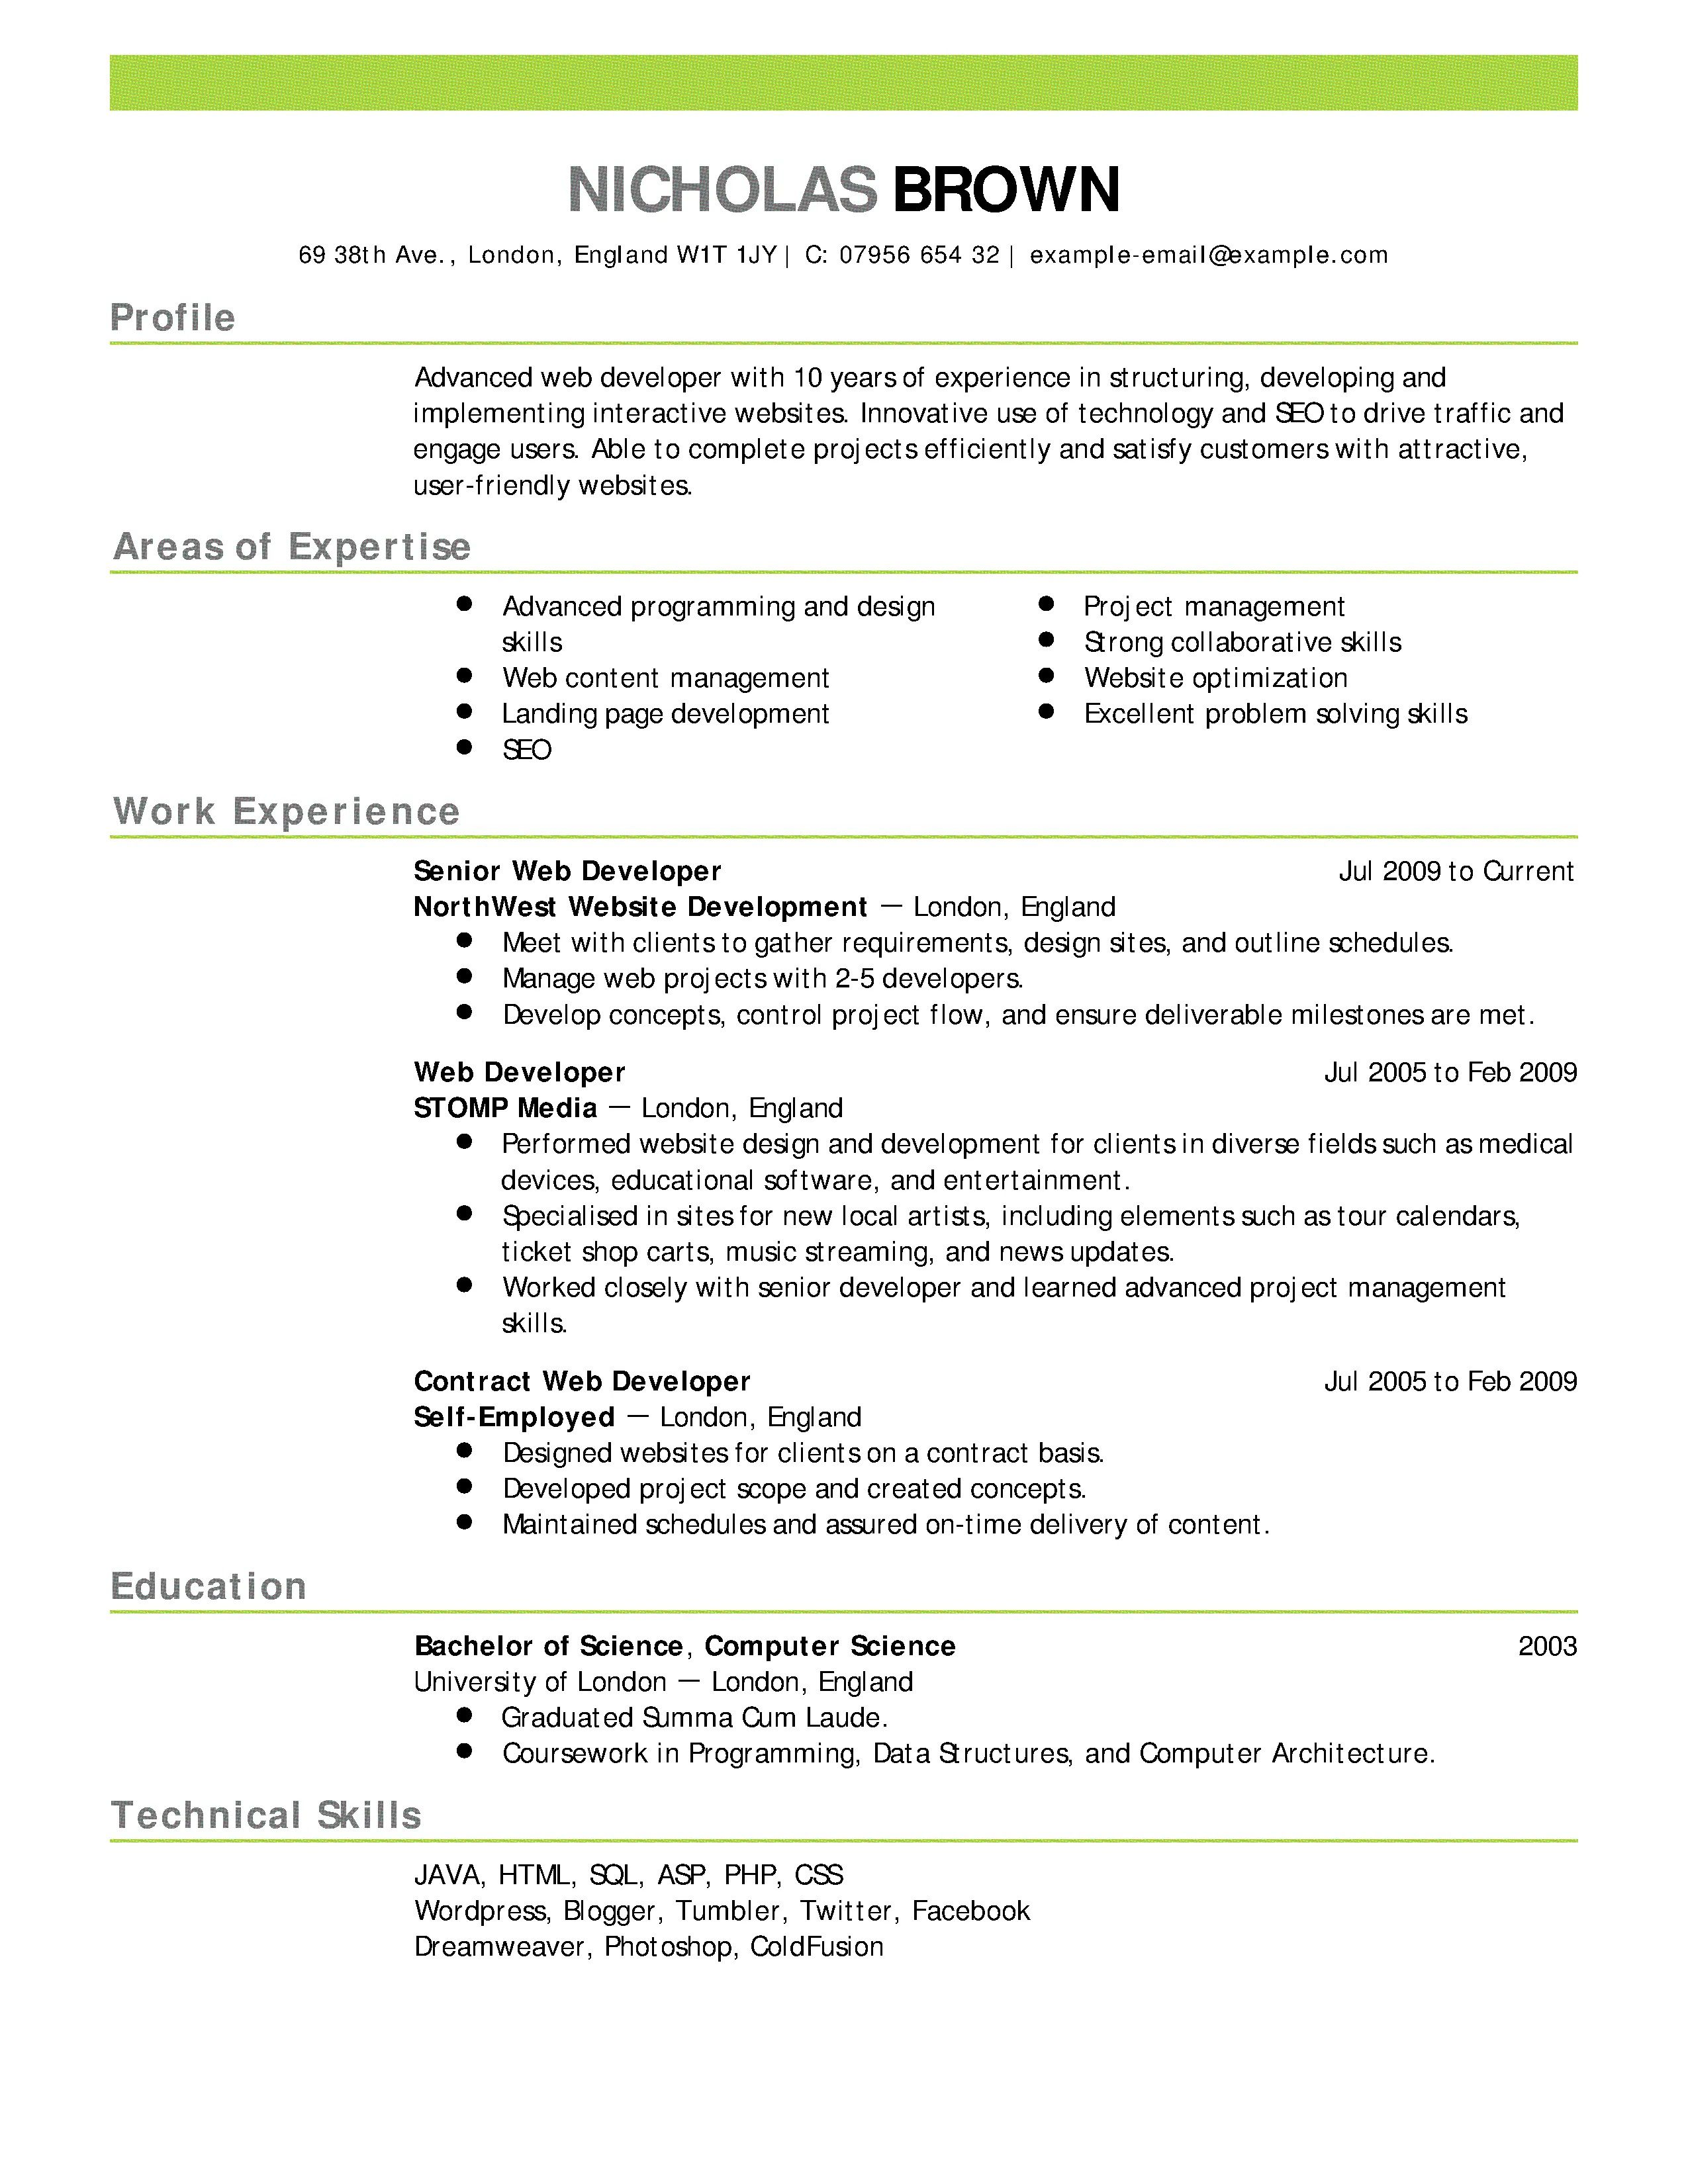 007 Rare Resume Template For Wordpad Picture  Free Cv DownloadFull